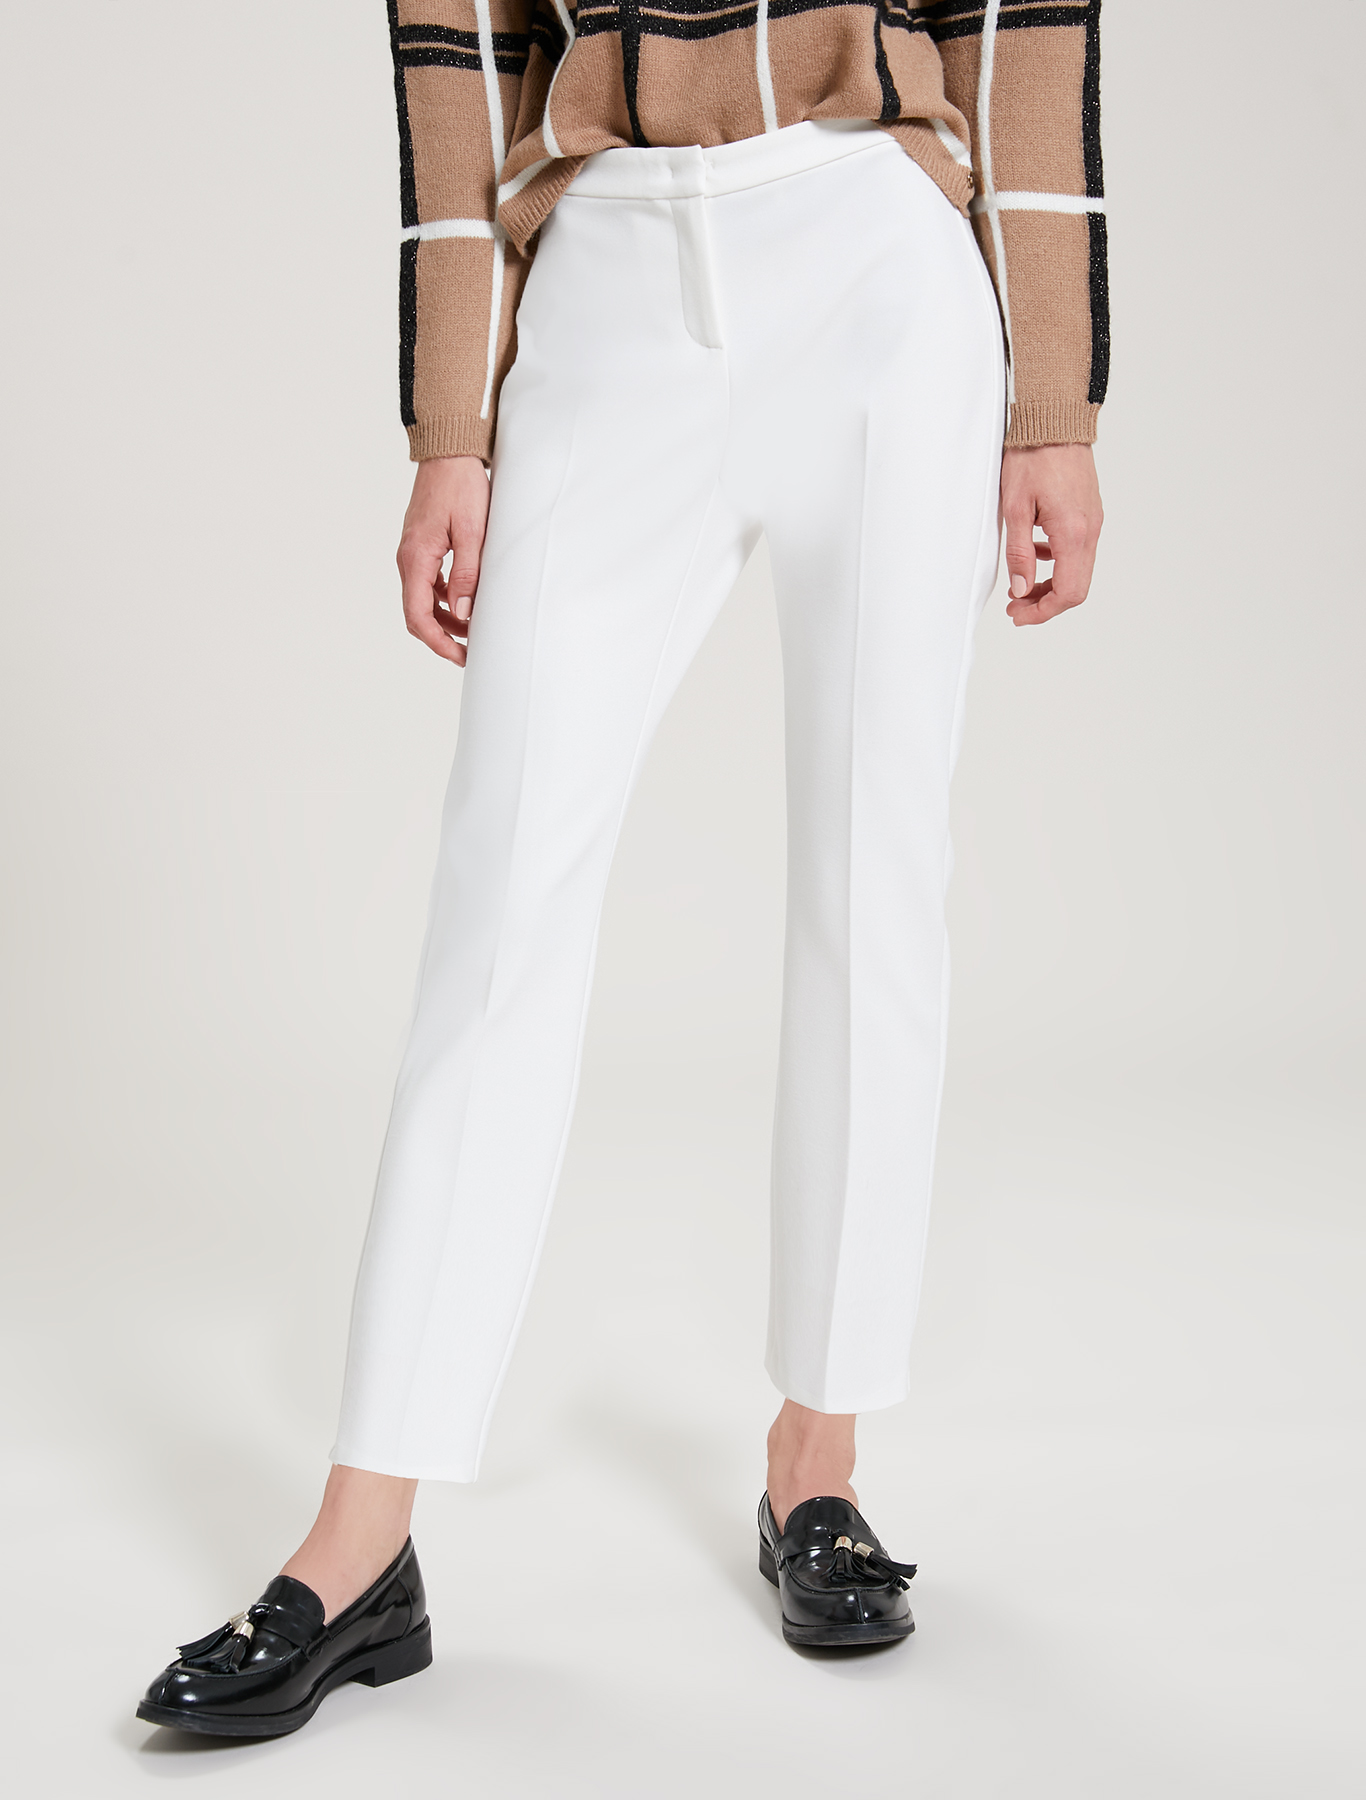 Ankle-length trousers - ivory - pennyblack